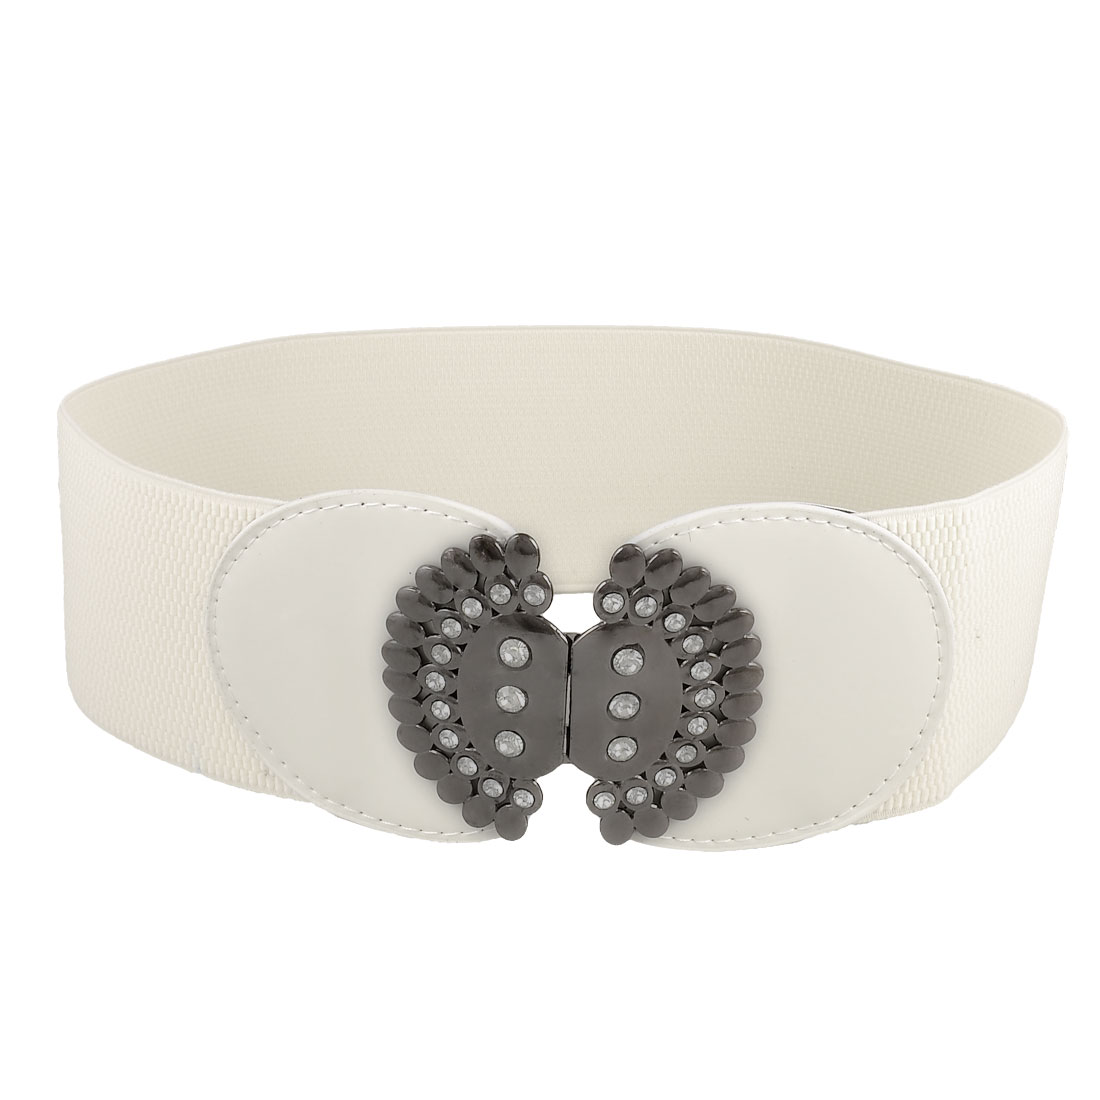 """White Metal Interlocking Buckle 2.9"""" Width Stretchy Waistband Belt for Woman"""